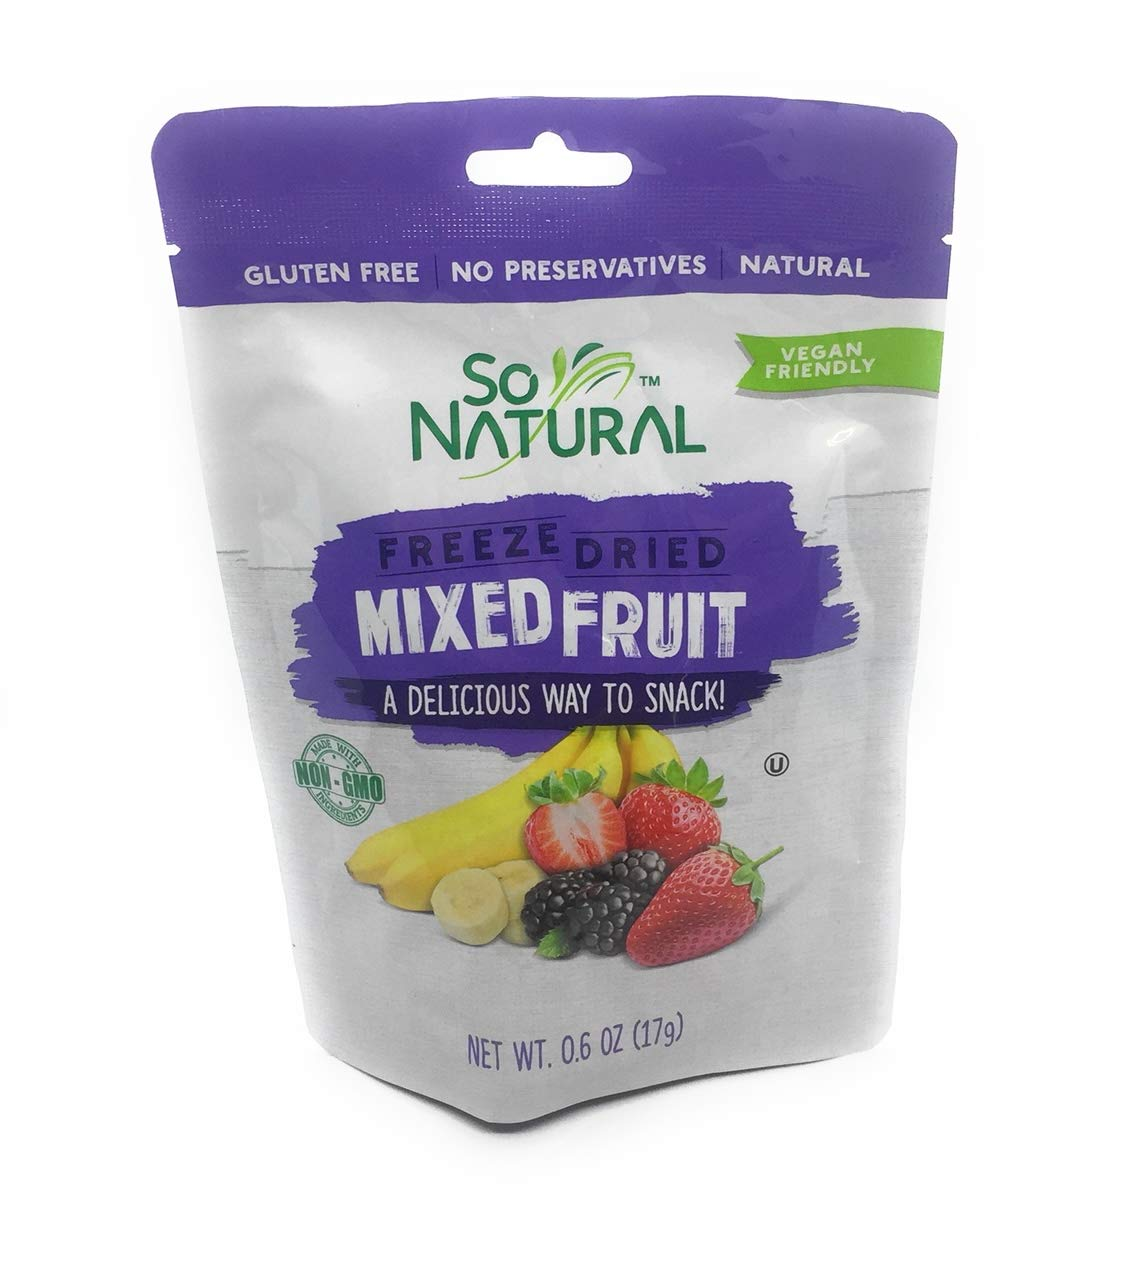 SO NATURAL FREEZED FRIED Mixed Fruit ( Banana, Mulberry, Strawberries ) 3 Packs.071 oz each